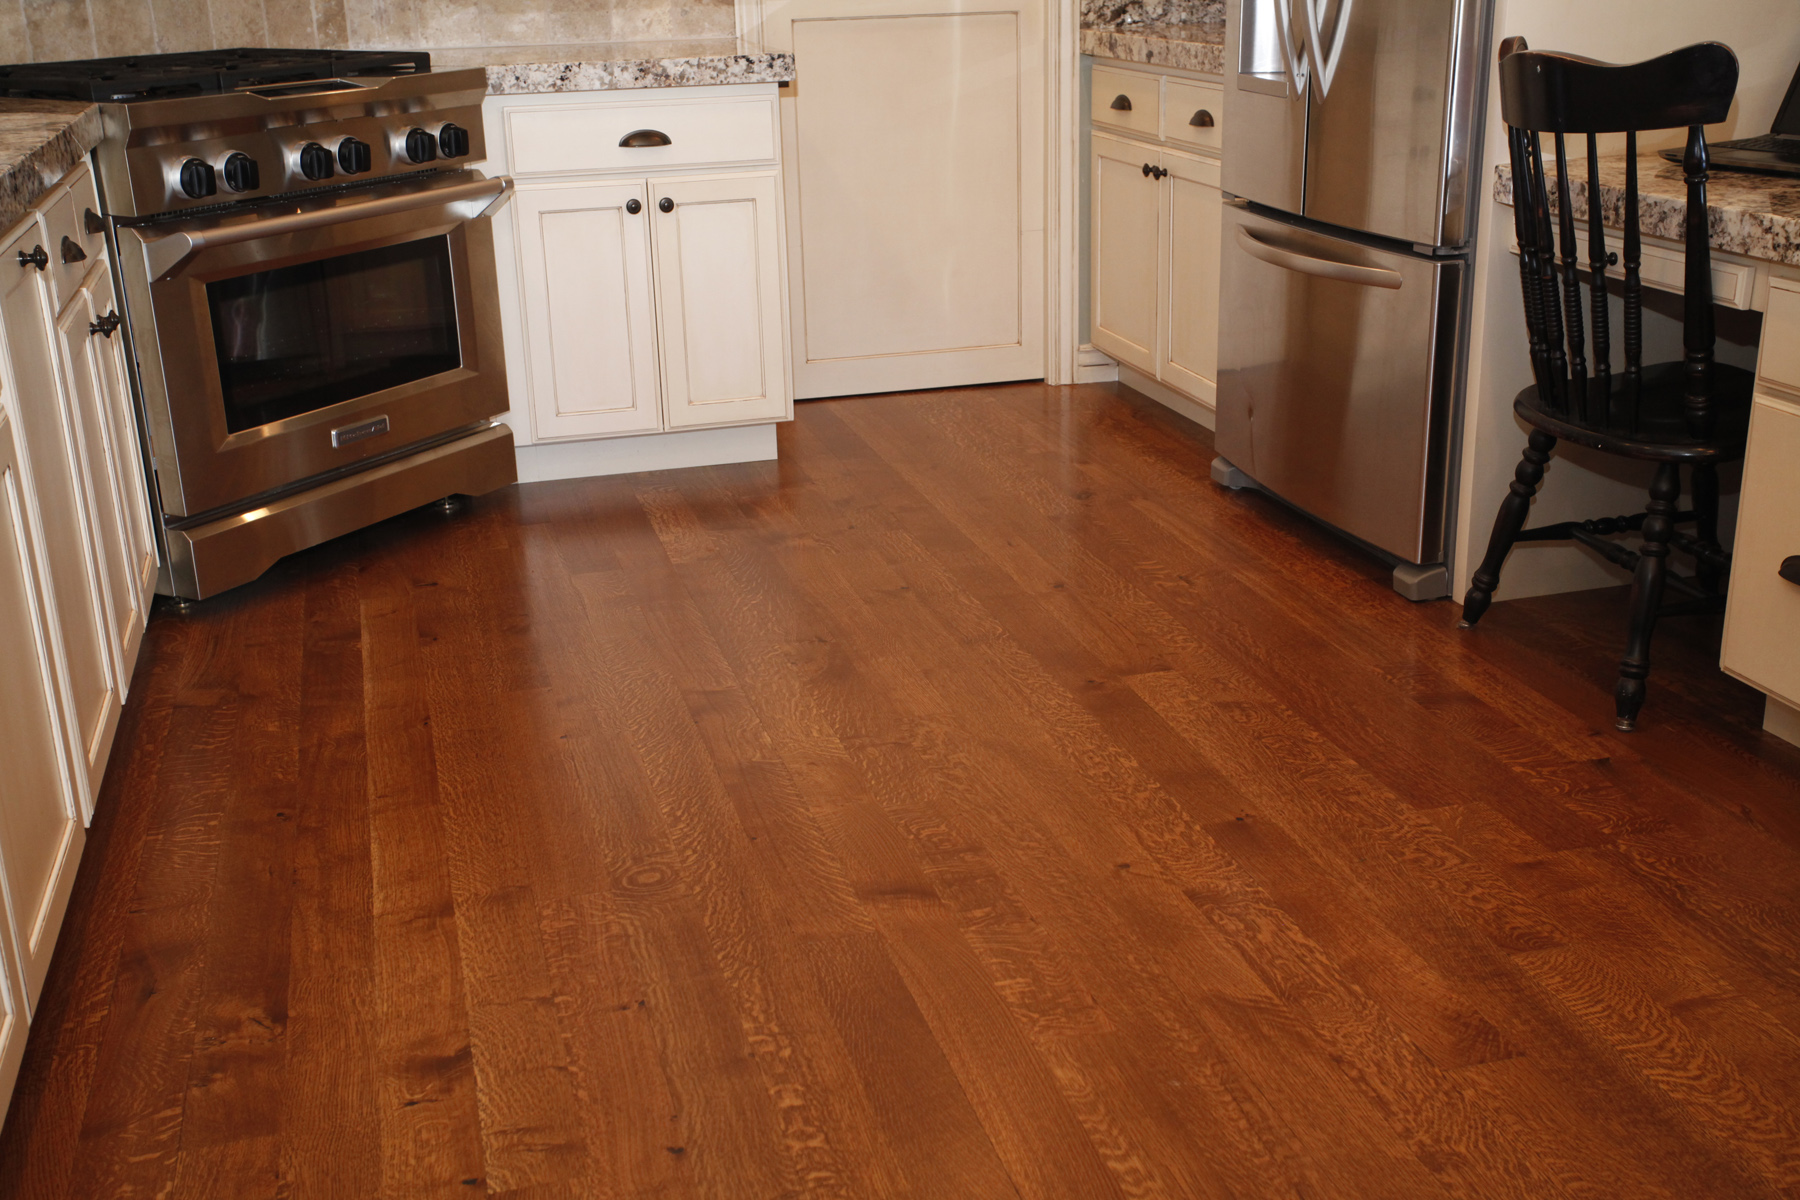 Carson s custom hardwood floors utah hardwood flooring for Hardwood floors kitchen